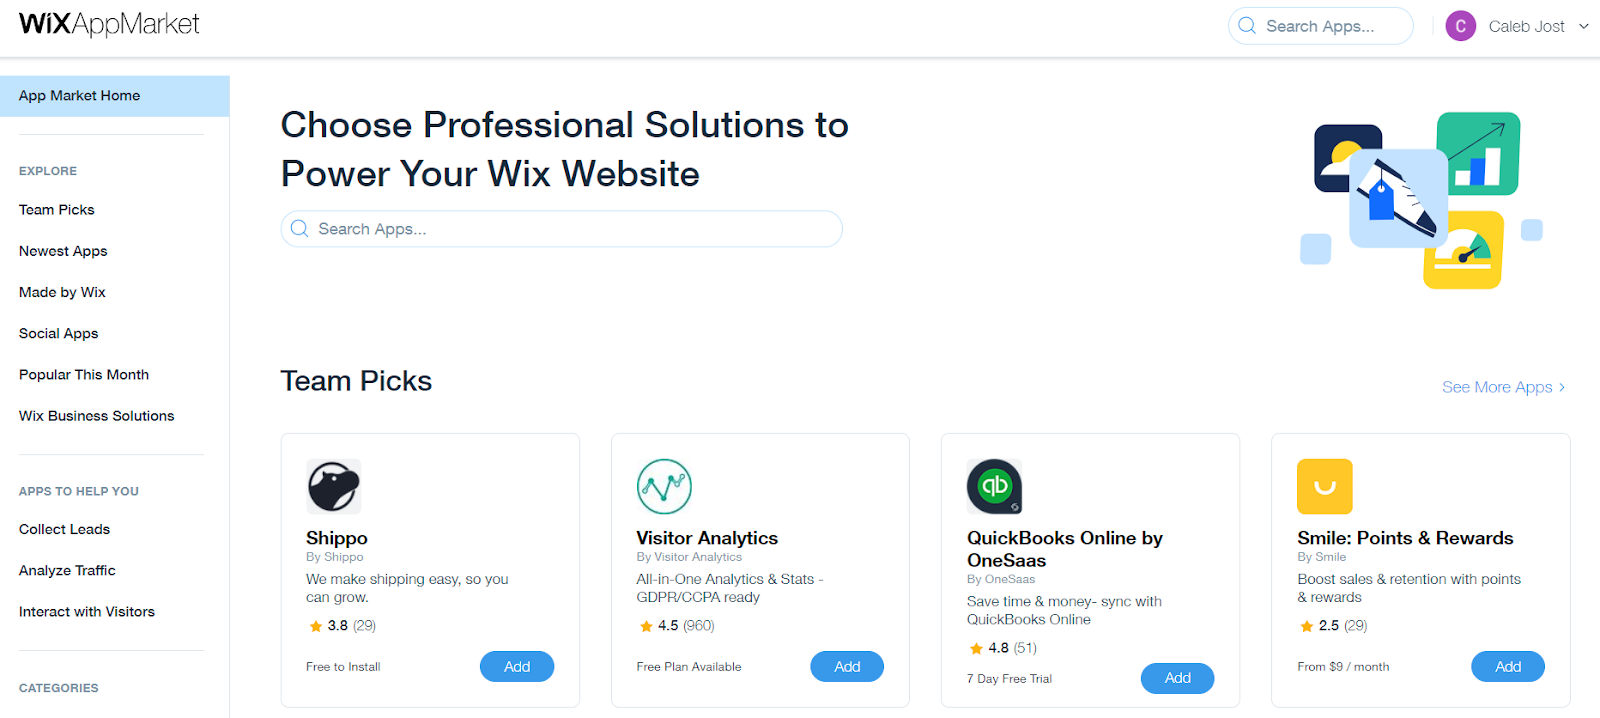 wix app market home page